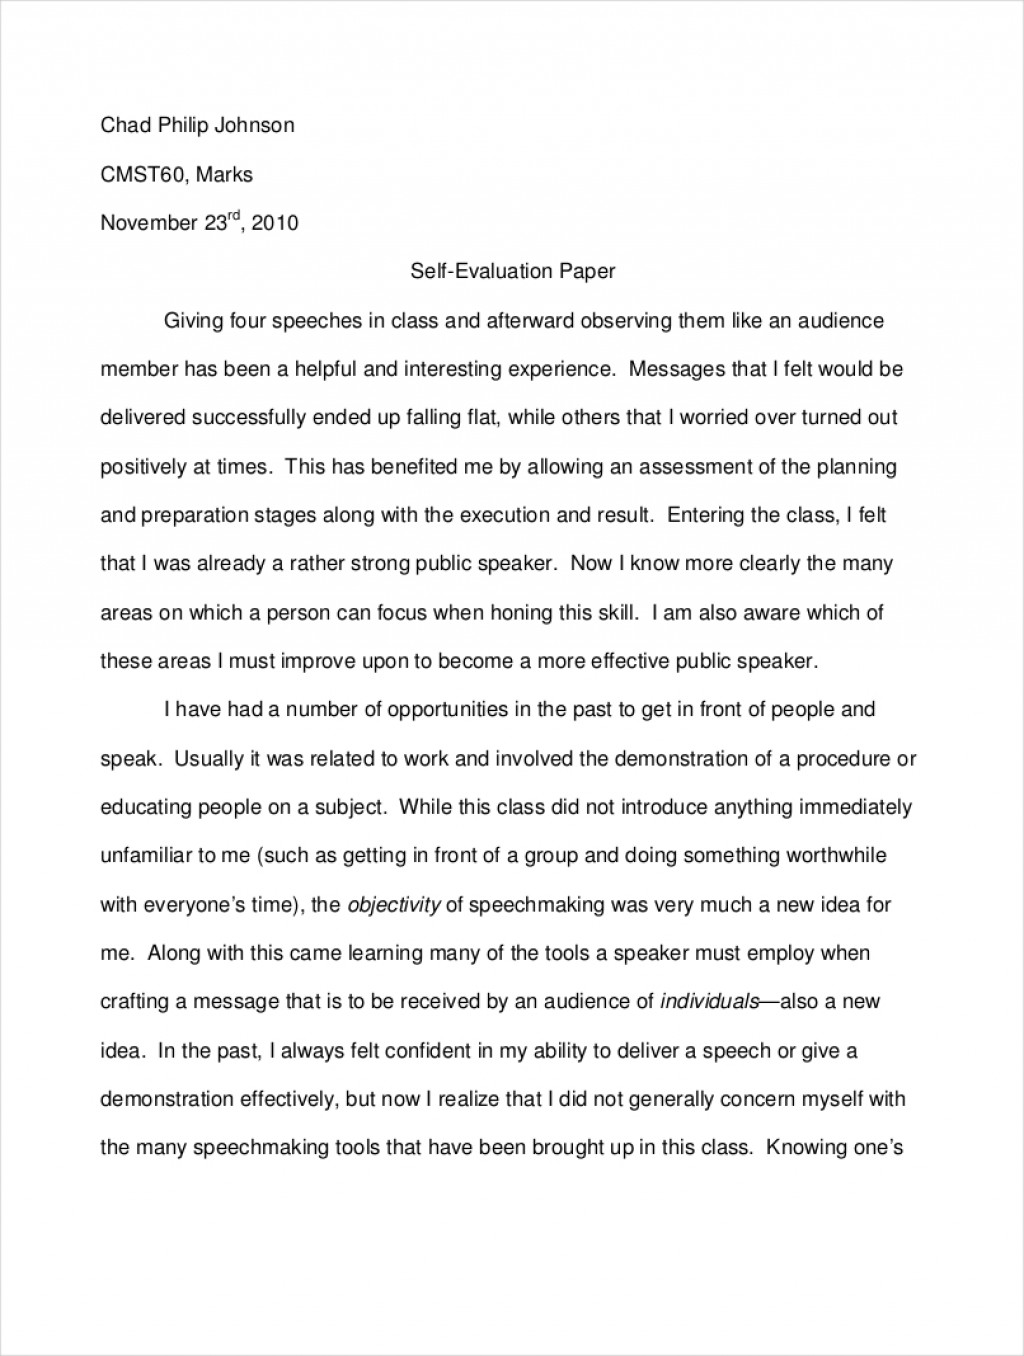 008 Ideas Of Examples Evaluation Essayn Example Who Am Amazing I Essay For Students College How To Write A Good 'who I' Large